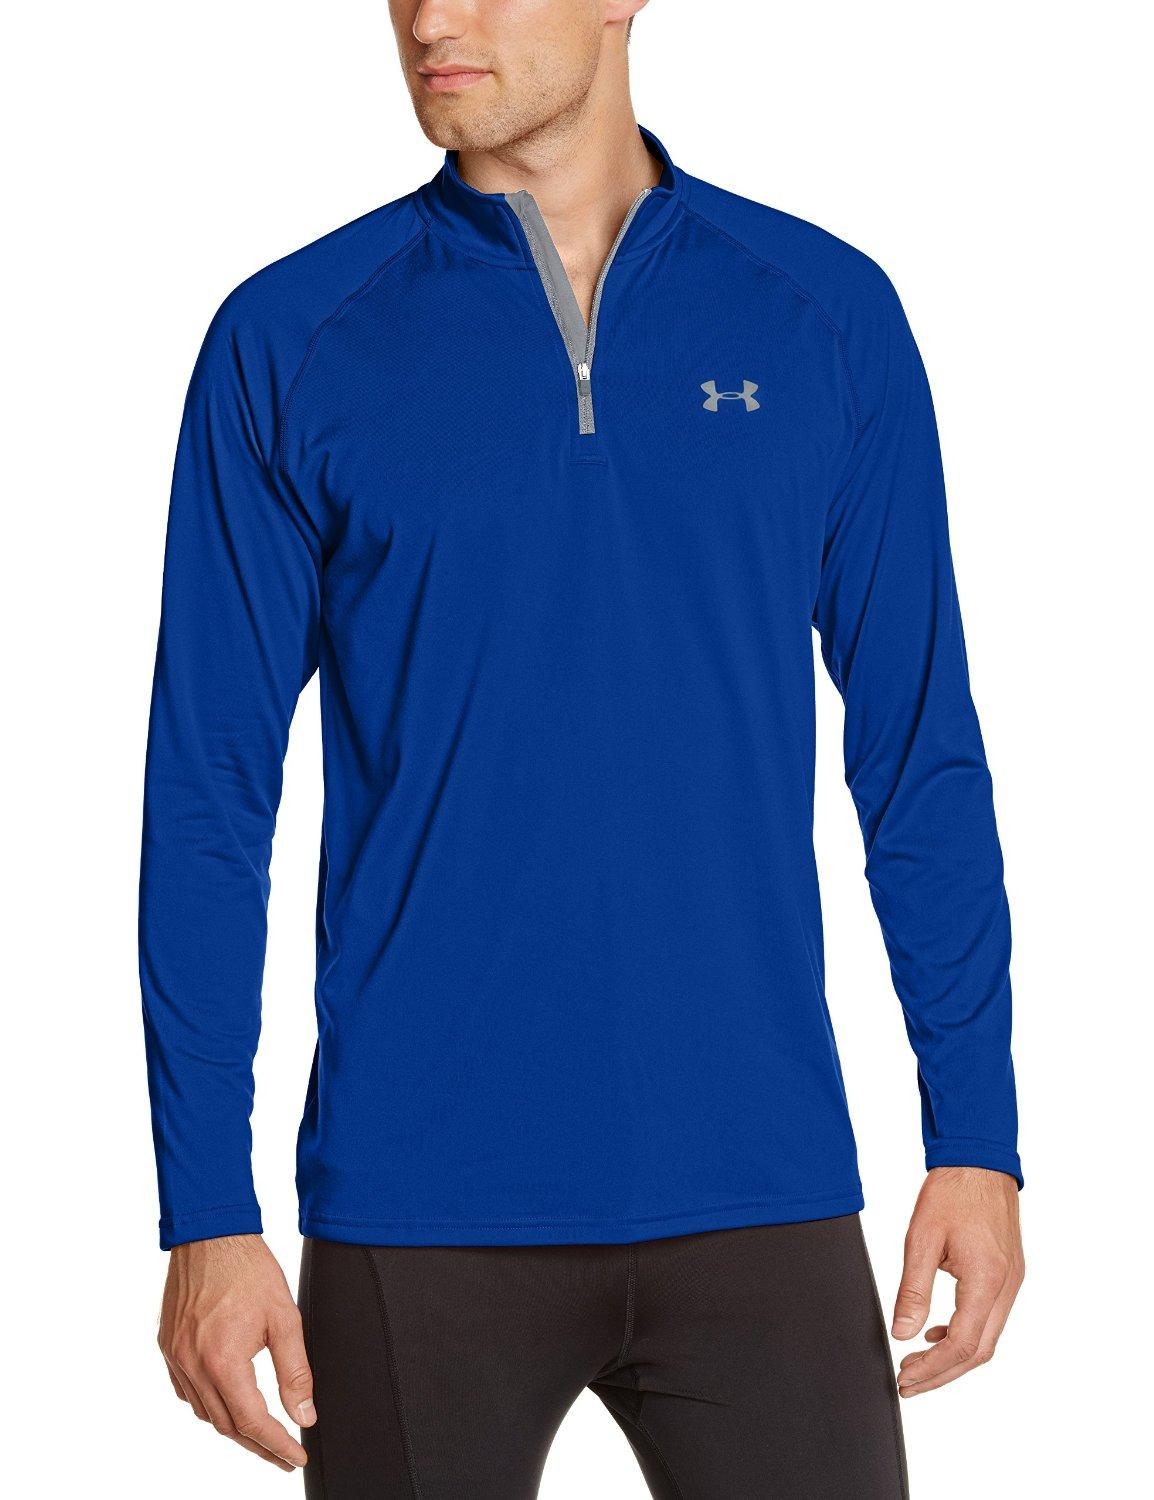 UA Men's Tech 1/4 Zip